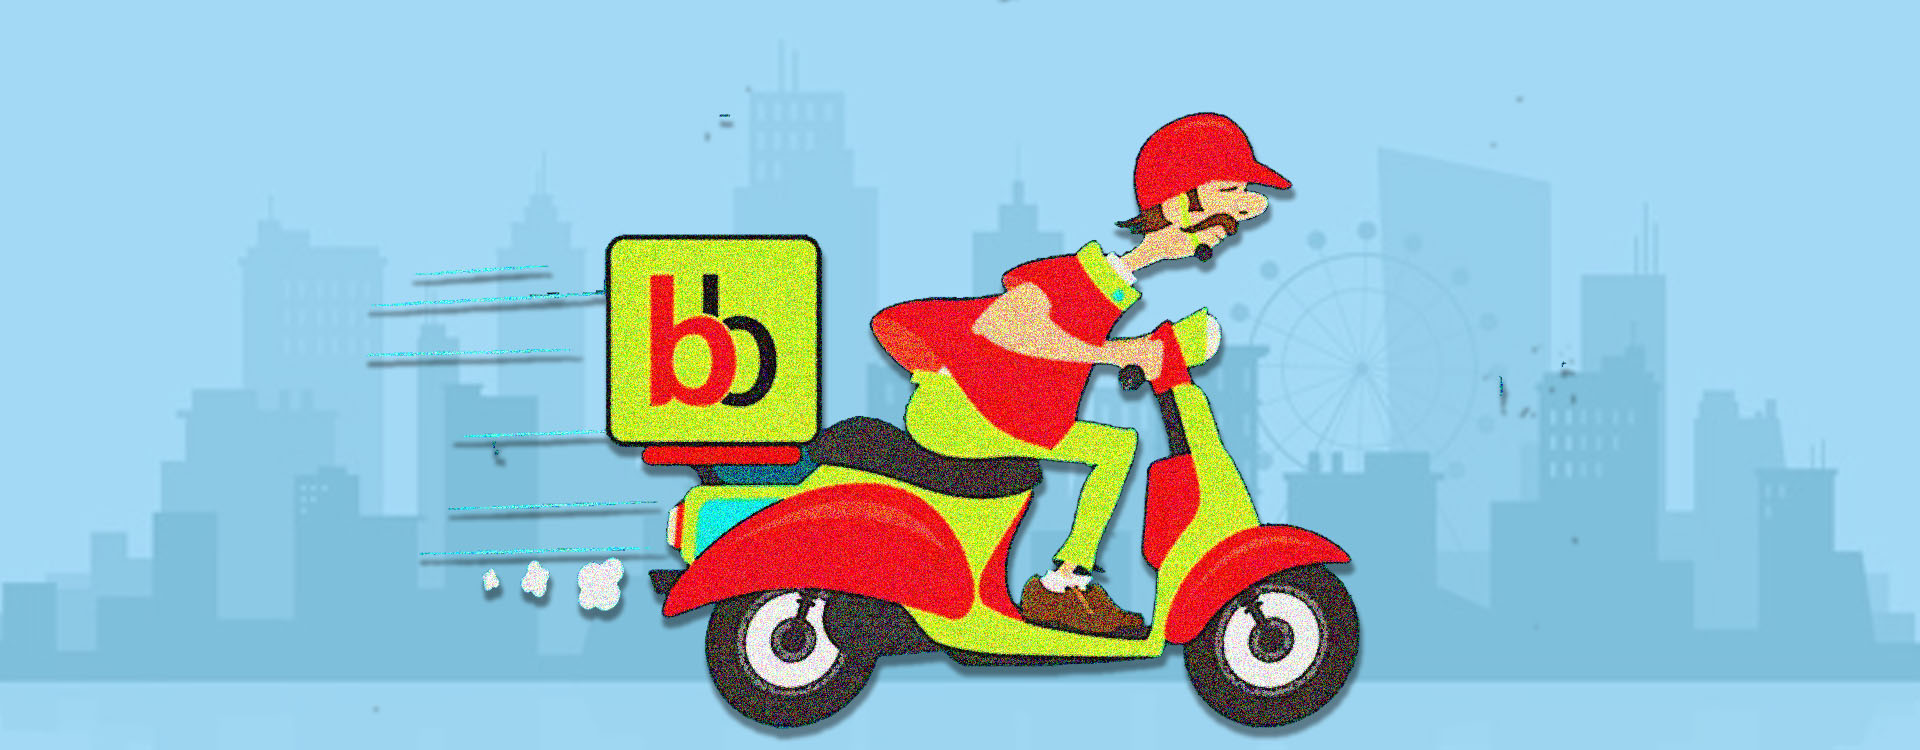 BigBasket: An Online Grocery Revolution, One Basket at a Time